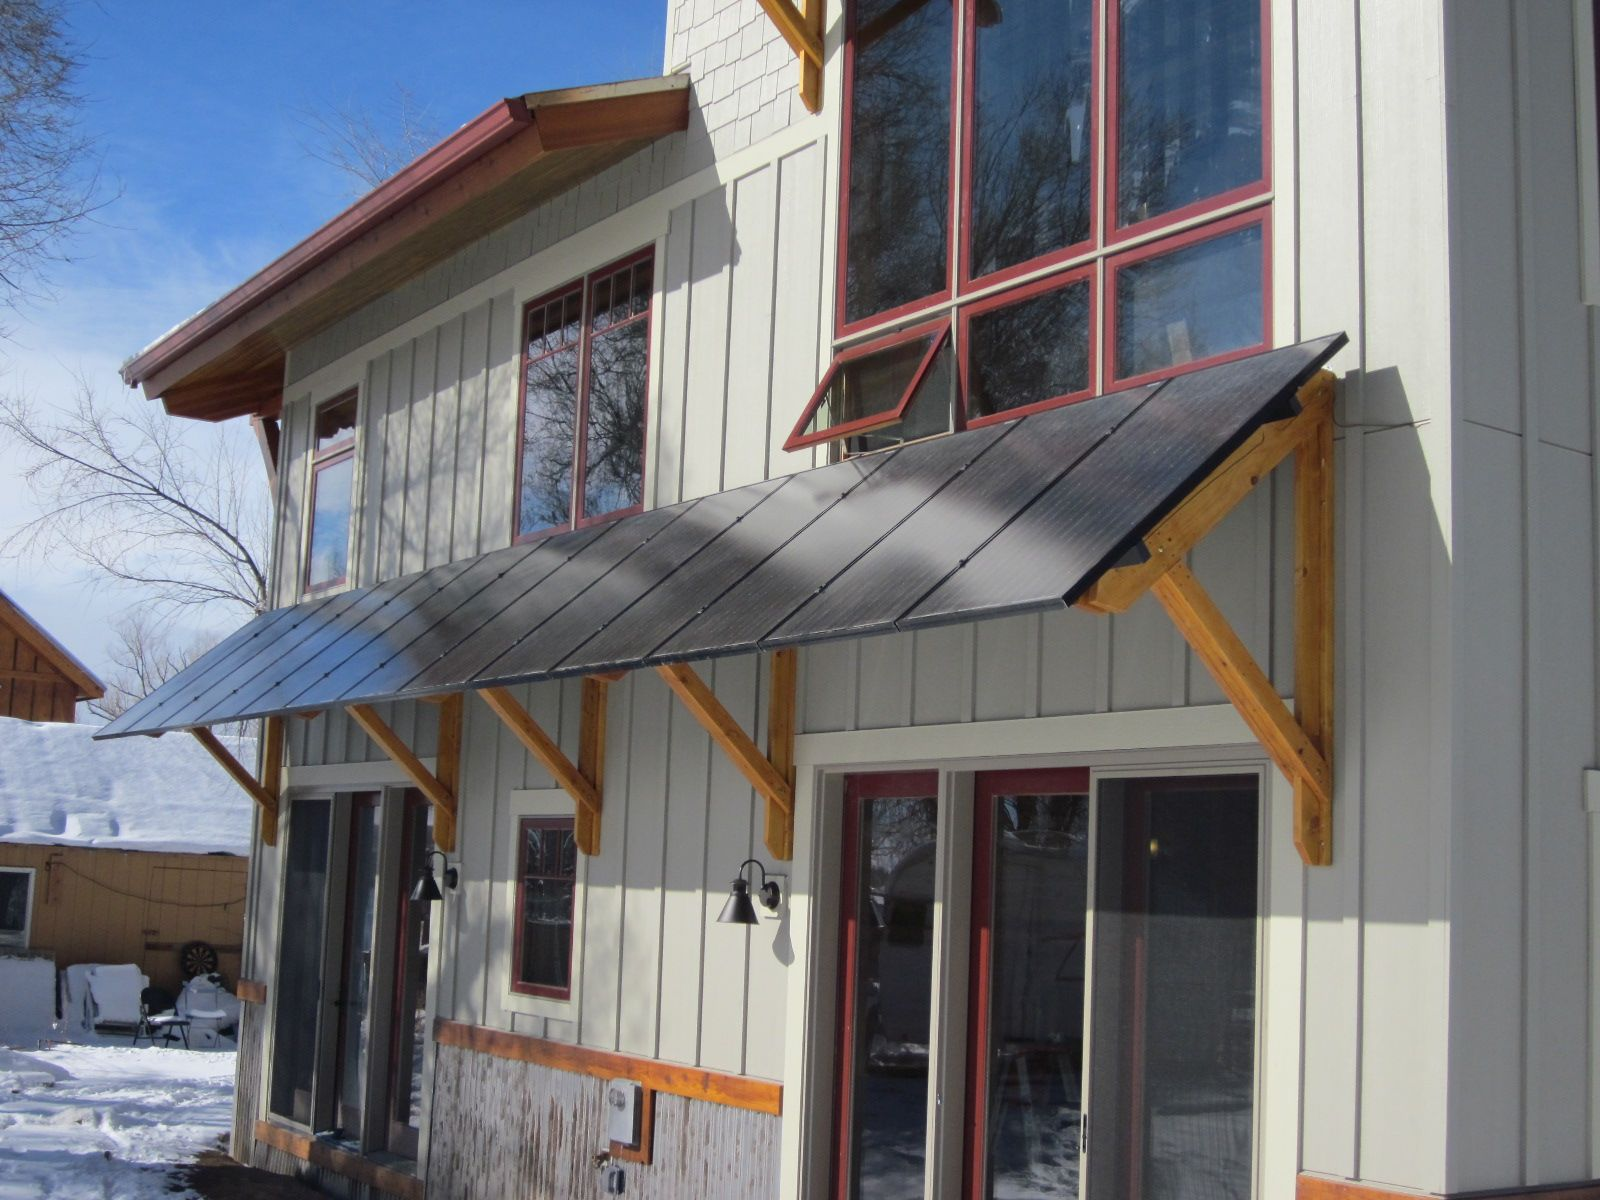 Solar Panel Awnings Are Very Aesthetic And Is A Creative